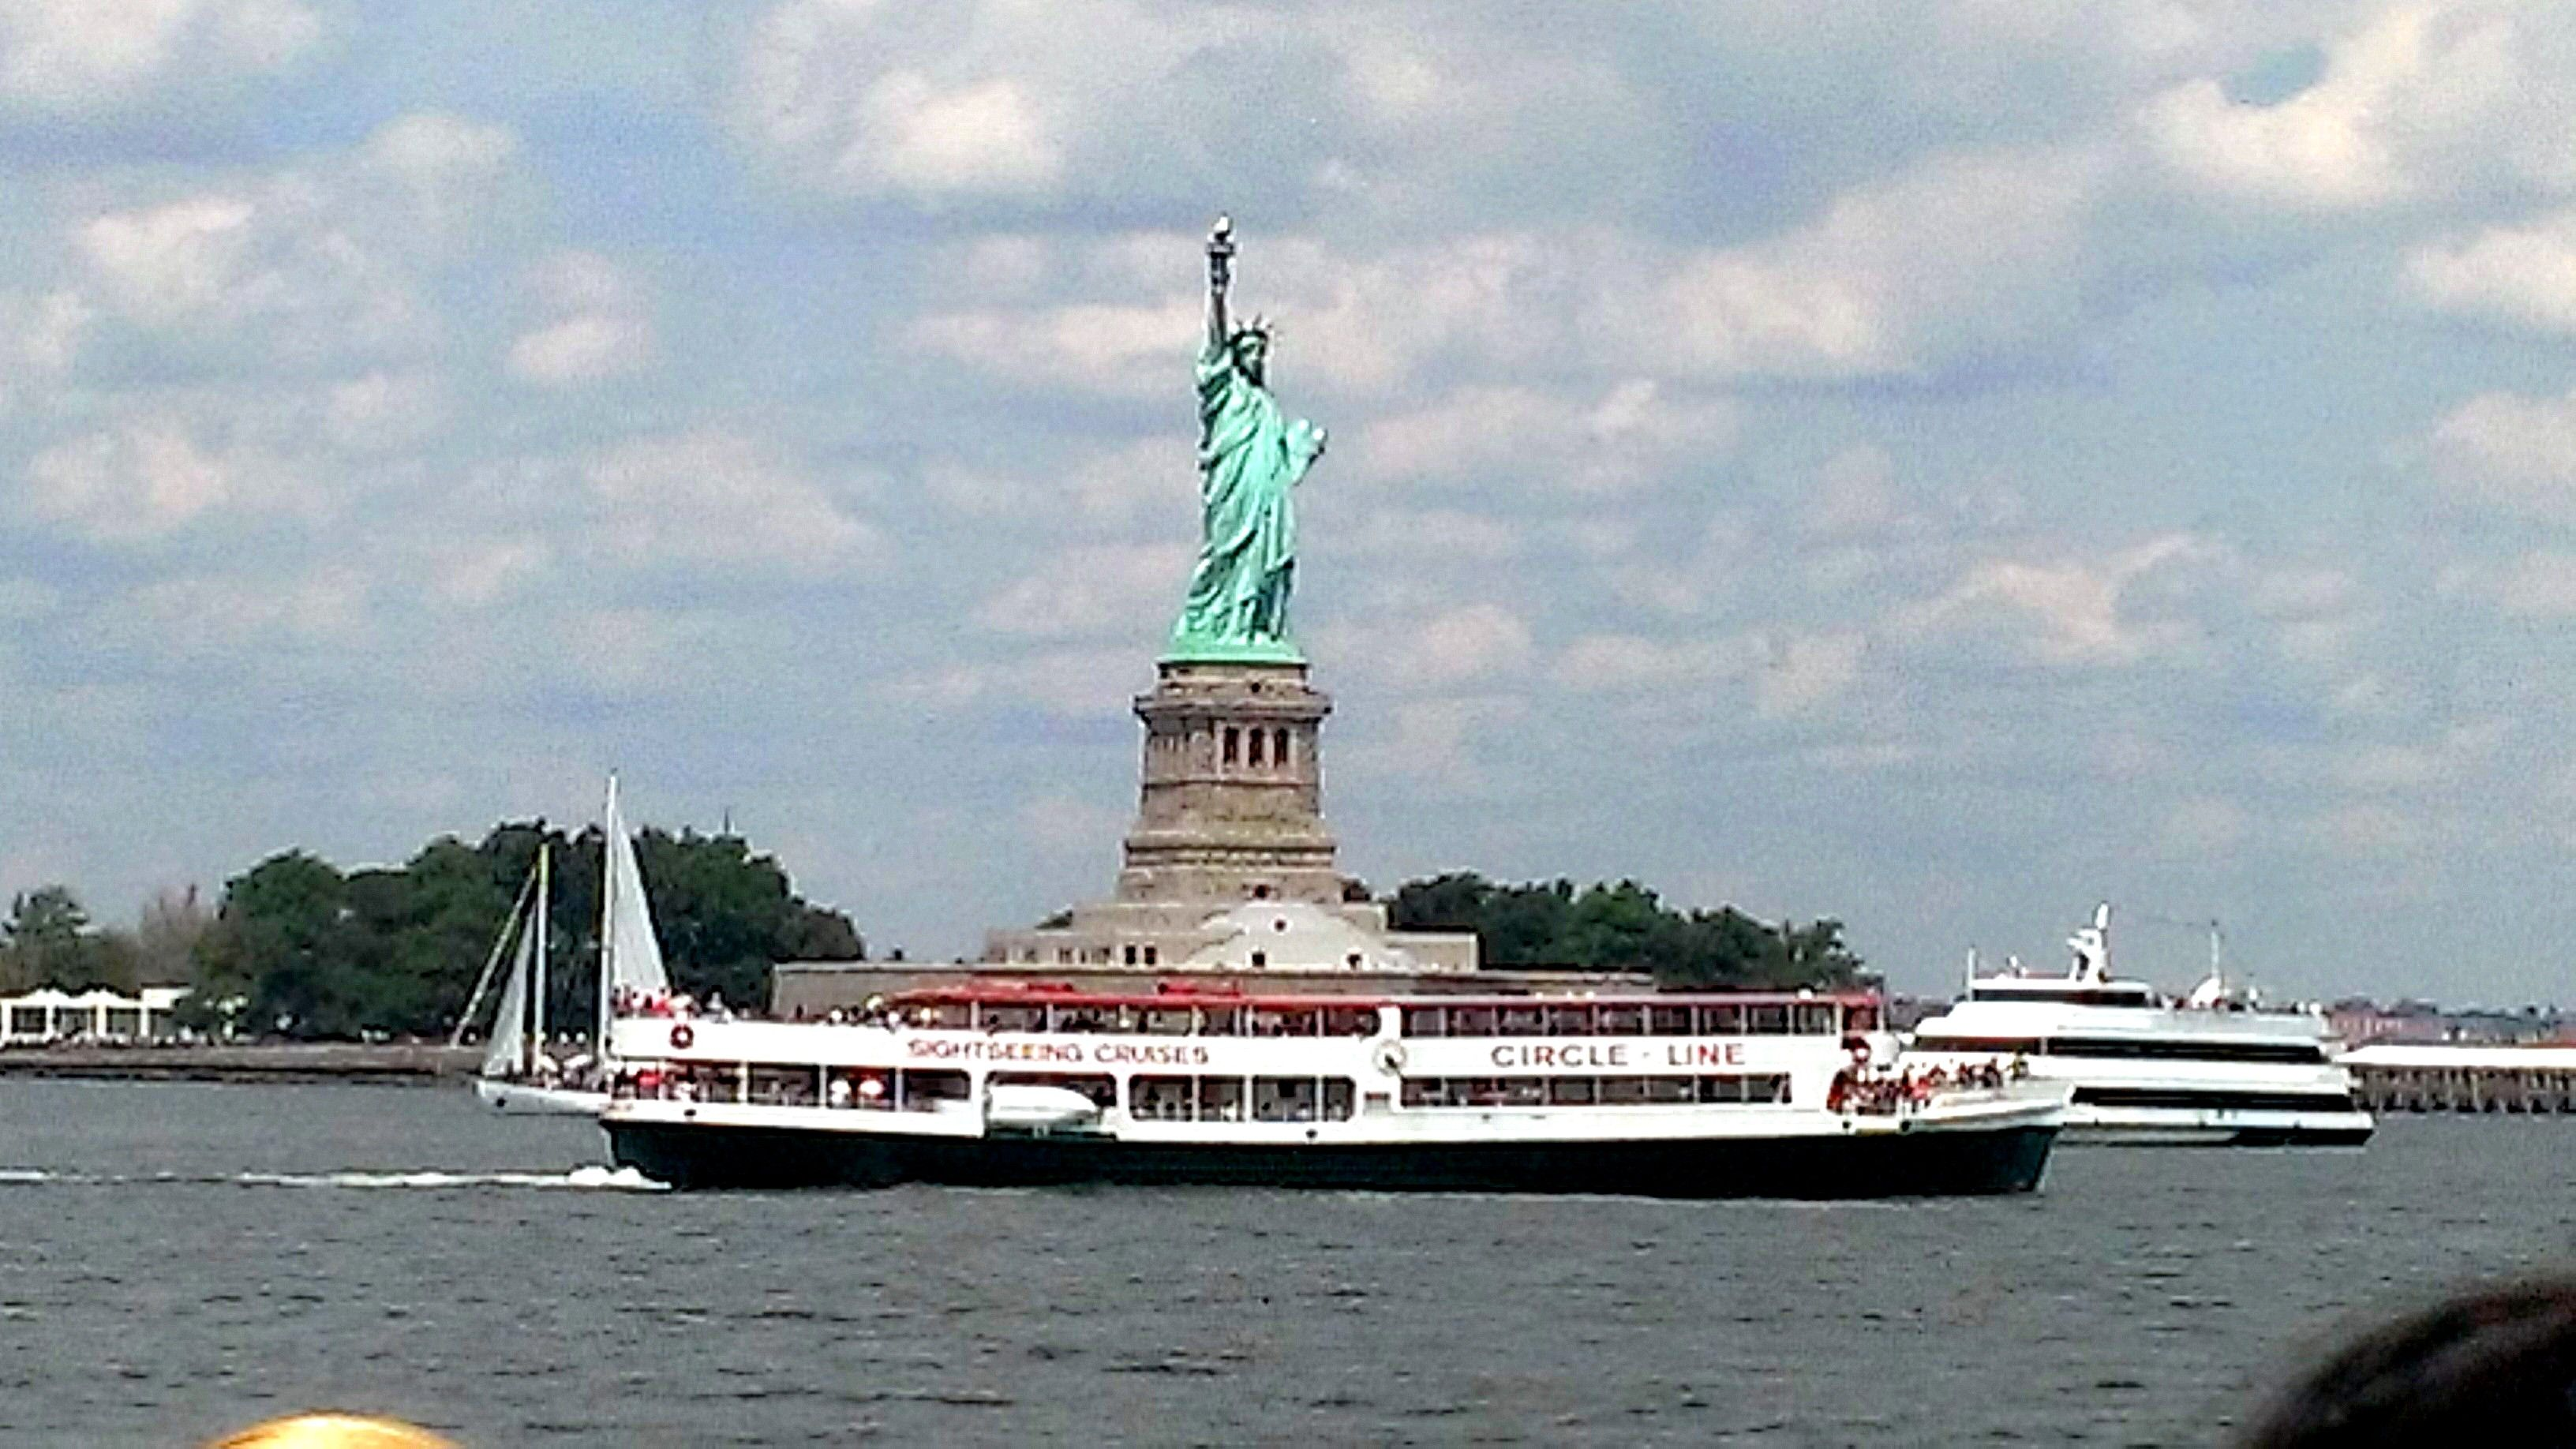 Statue Of Liberty And Circle Line Cruise Statue Of Liberty Cruise Liberty